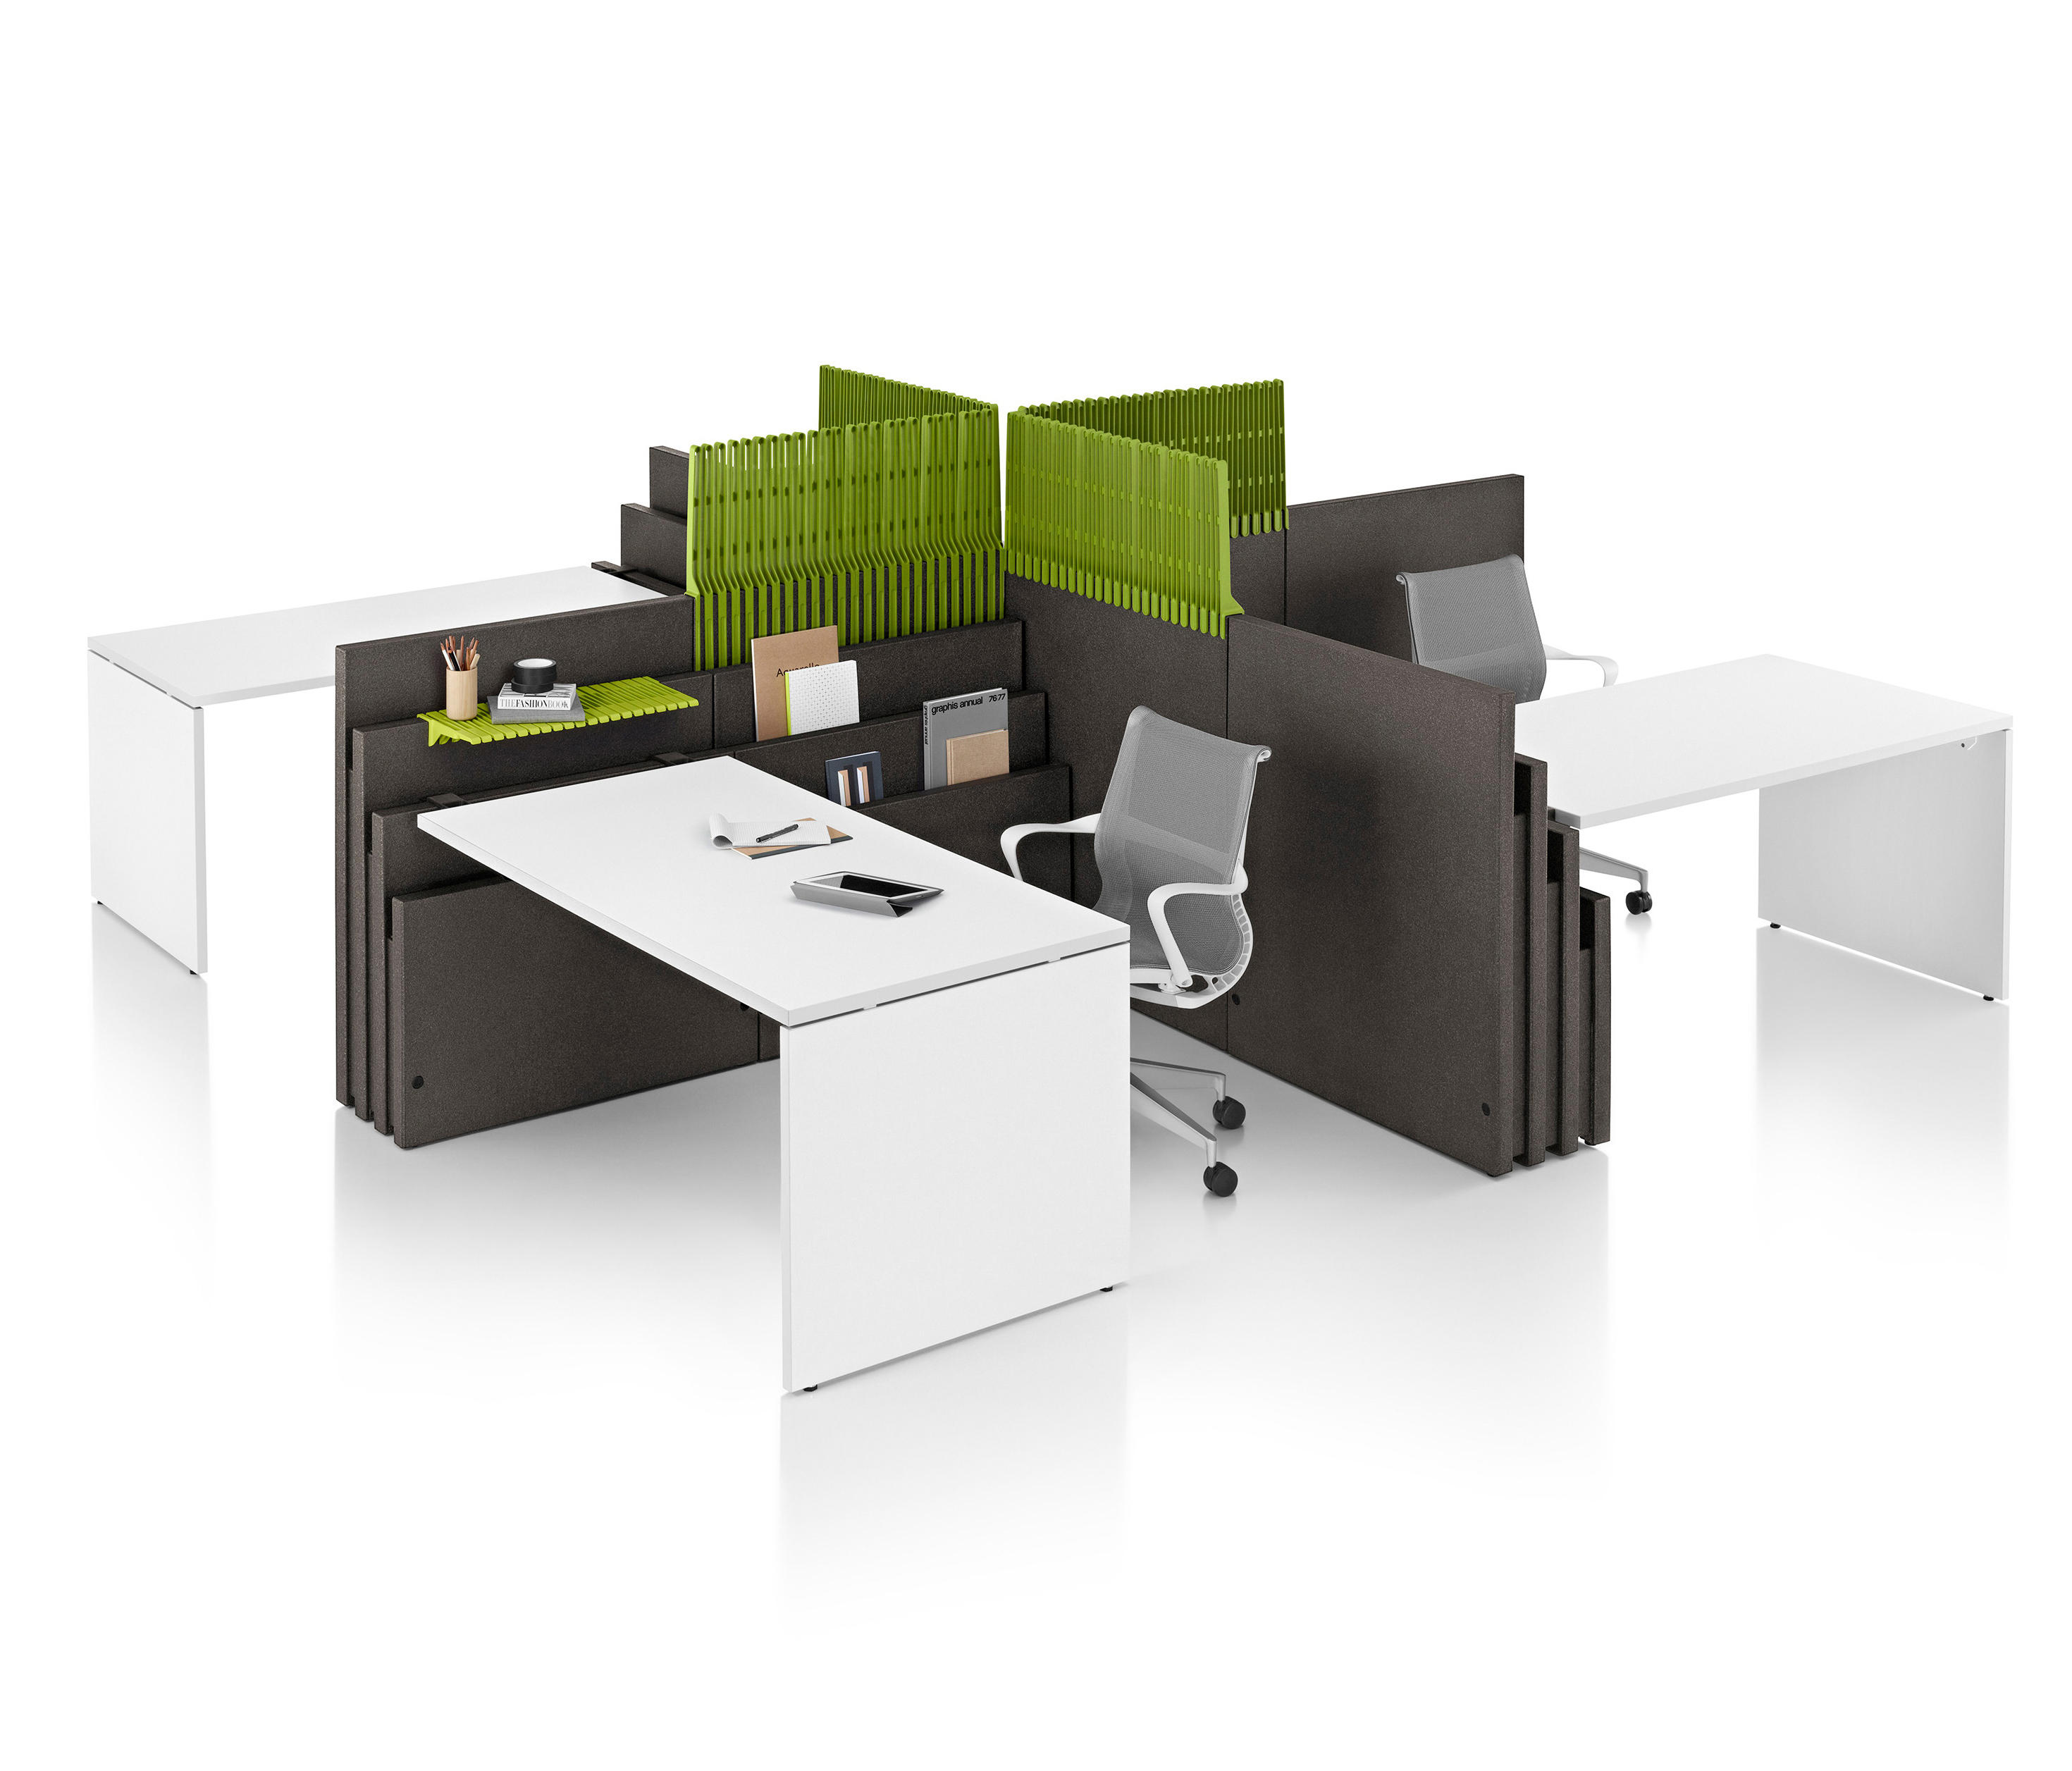 Metaform Portfolio By Herman Miller | Desks